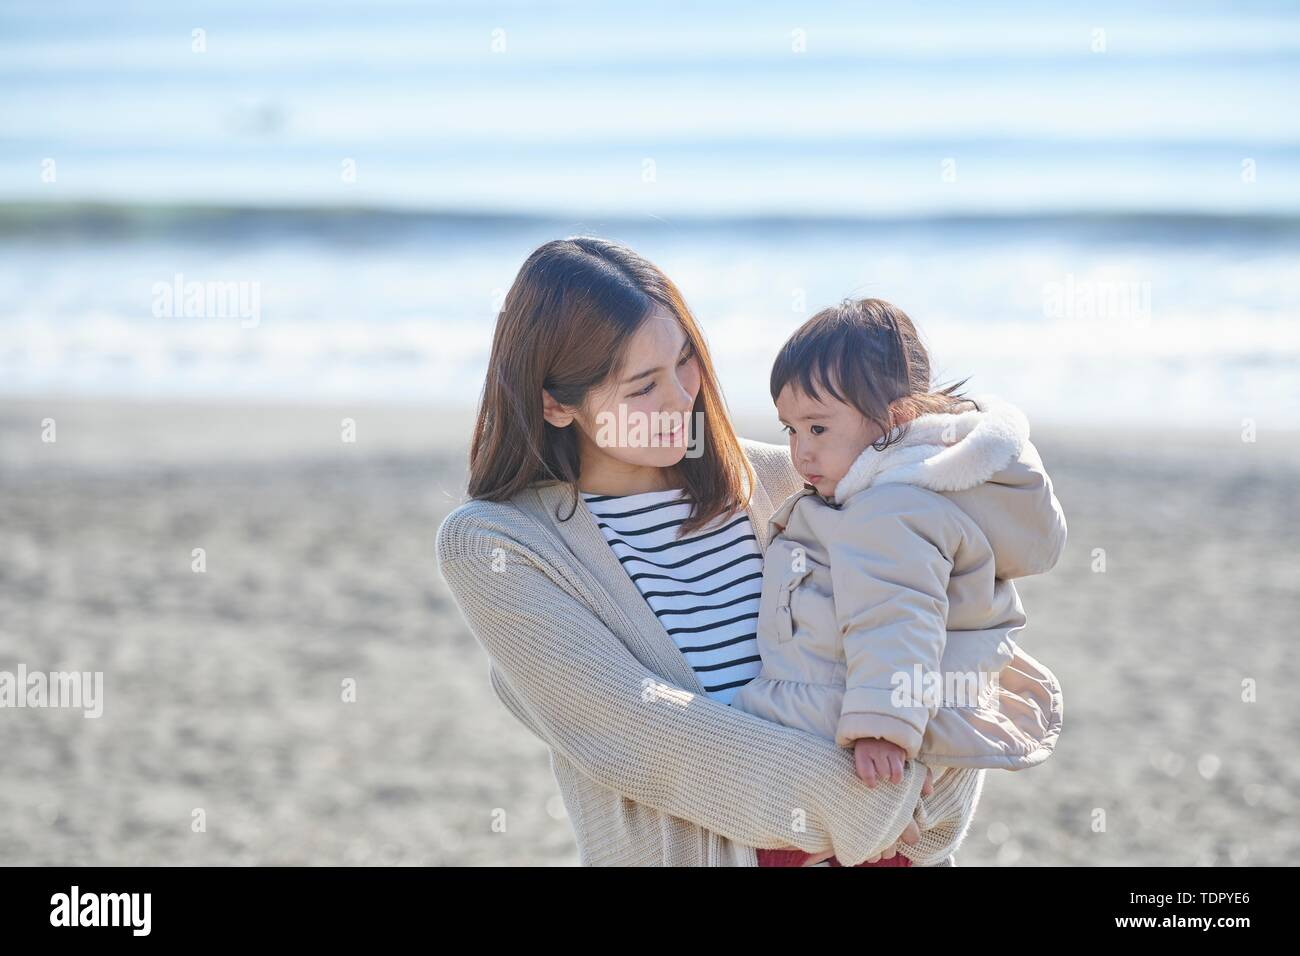 Japanese kid with mother at the beach - Stock Image